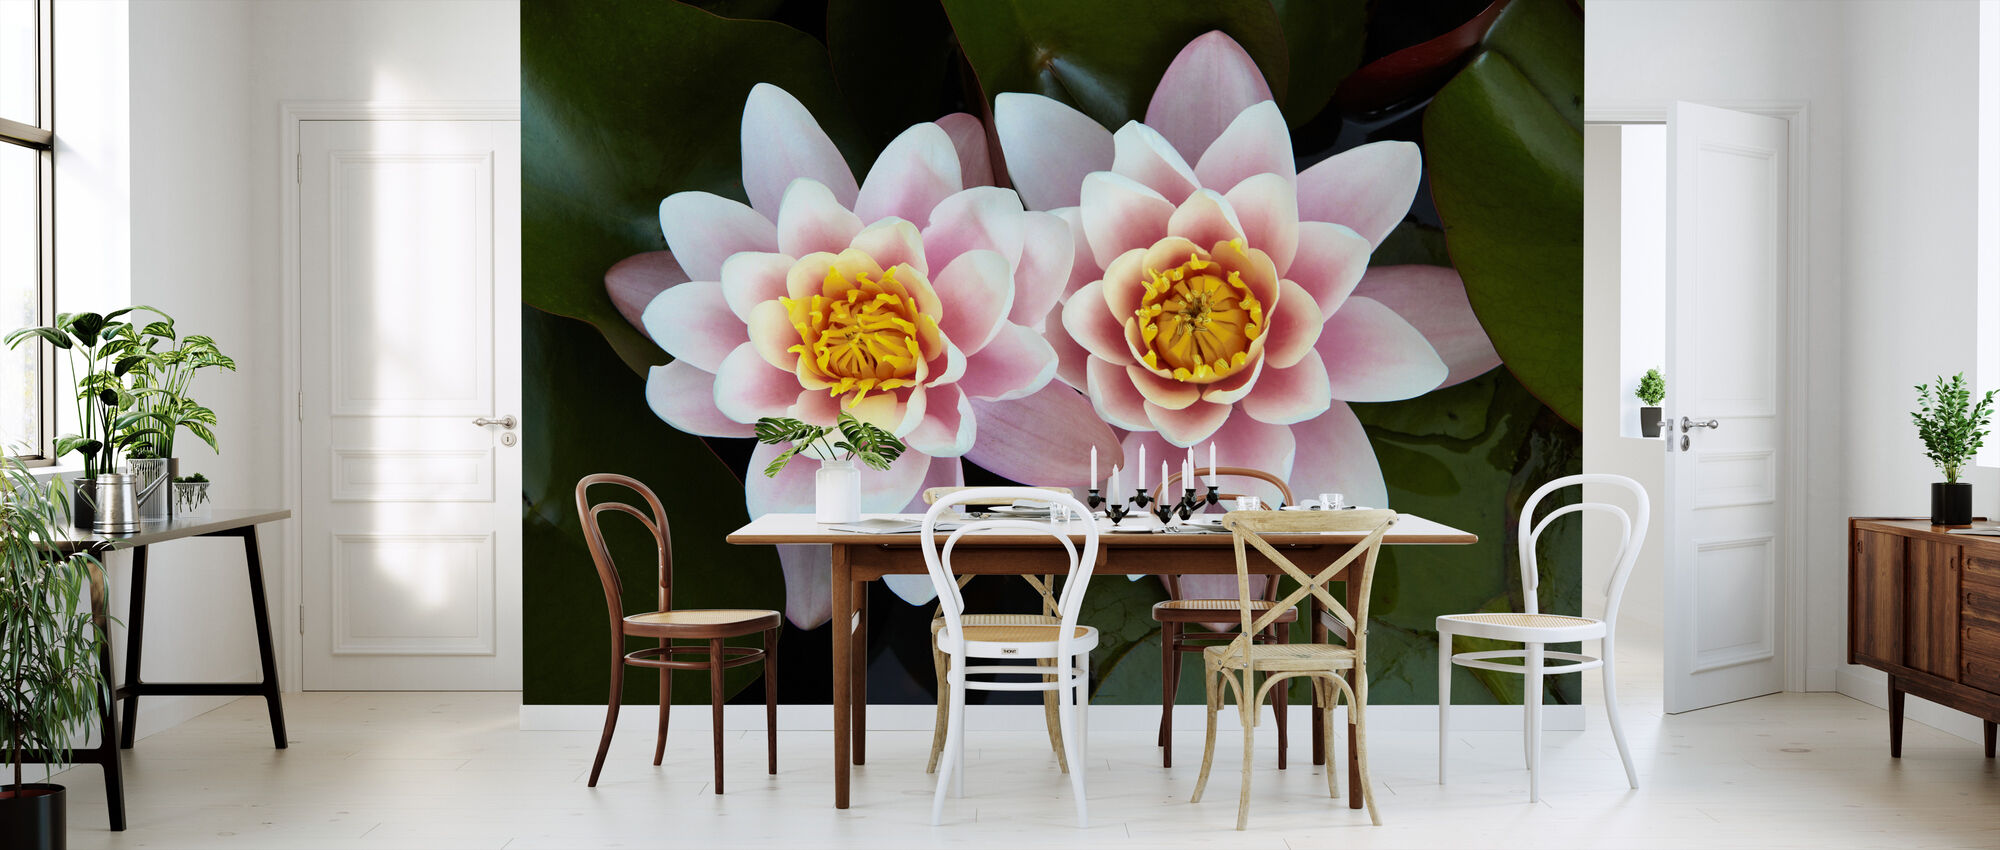 Pair of Water Lilies - Wallpaper - Kitchen